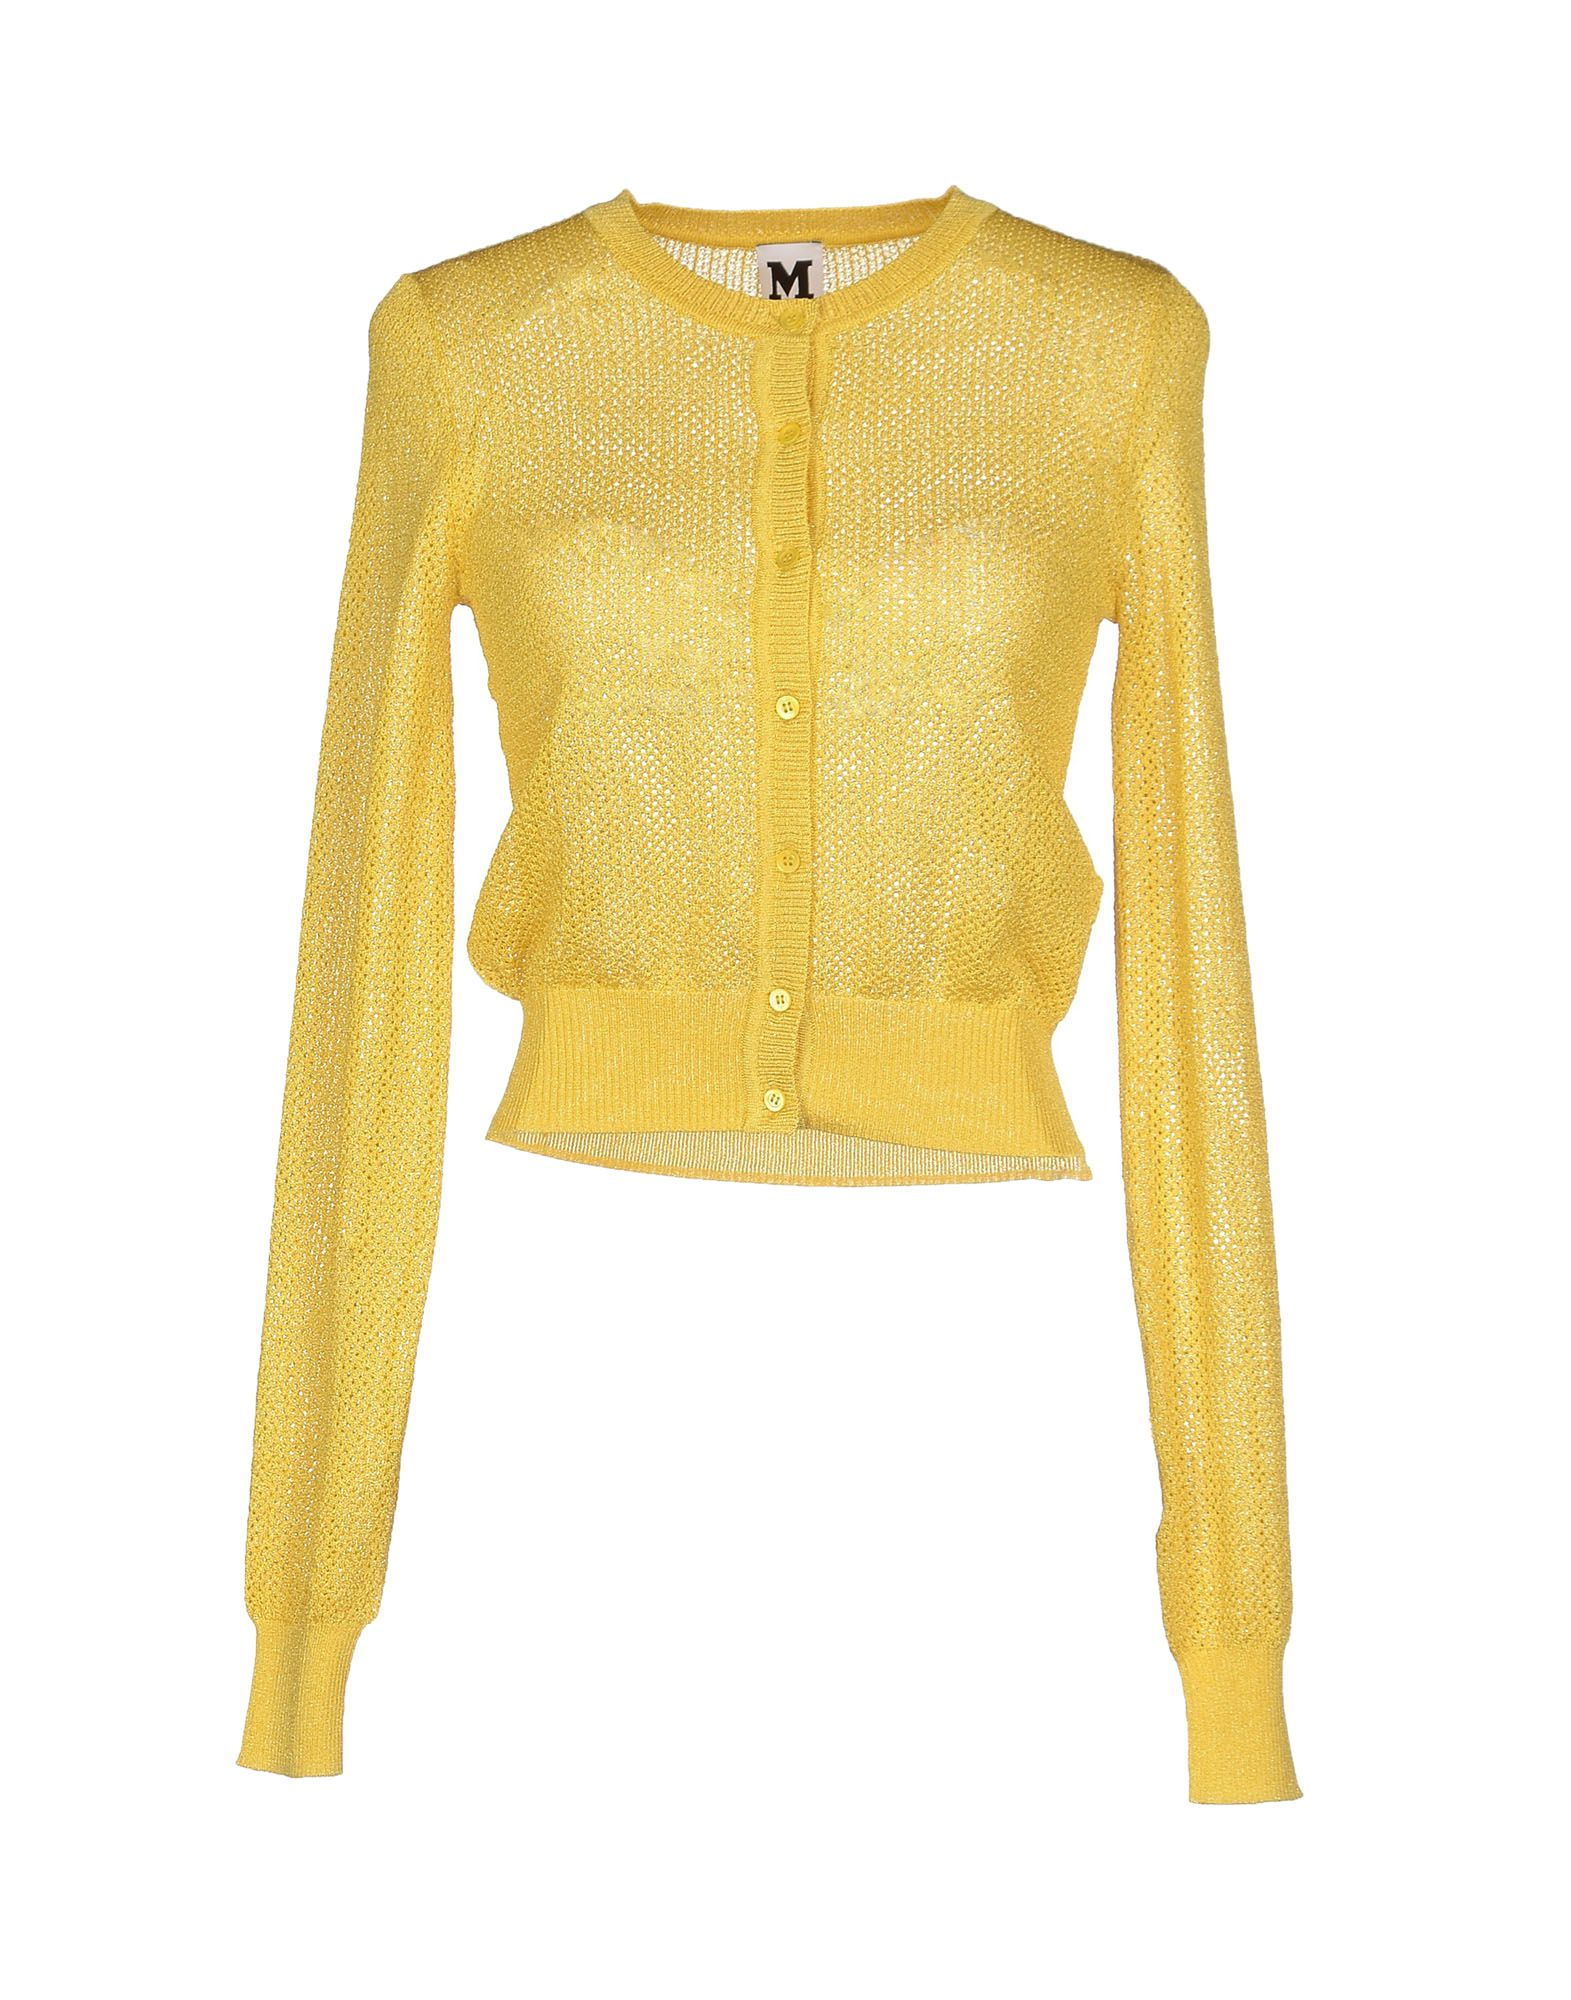 Yellow cardigan - results from brands Carter's, Banana Republic, Old Navy, products like GA Tech Yellow Jackets Colosseum Women's Black Board Cardigan - Charcoal (Grey), Size: Medium, ALFANI Petite Open-Front Cardigan, Created for Macy's - Blue P/S,